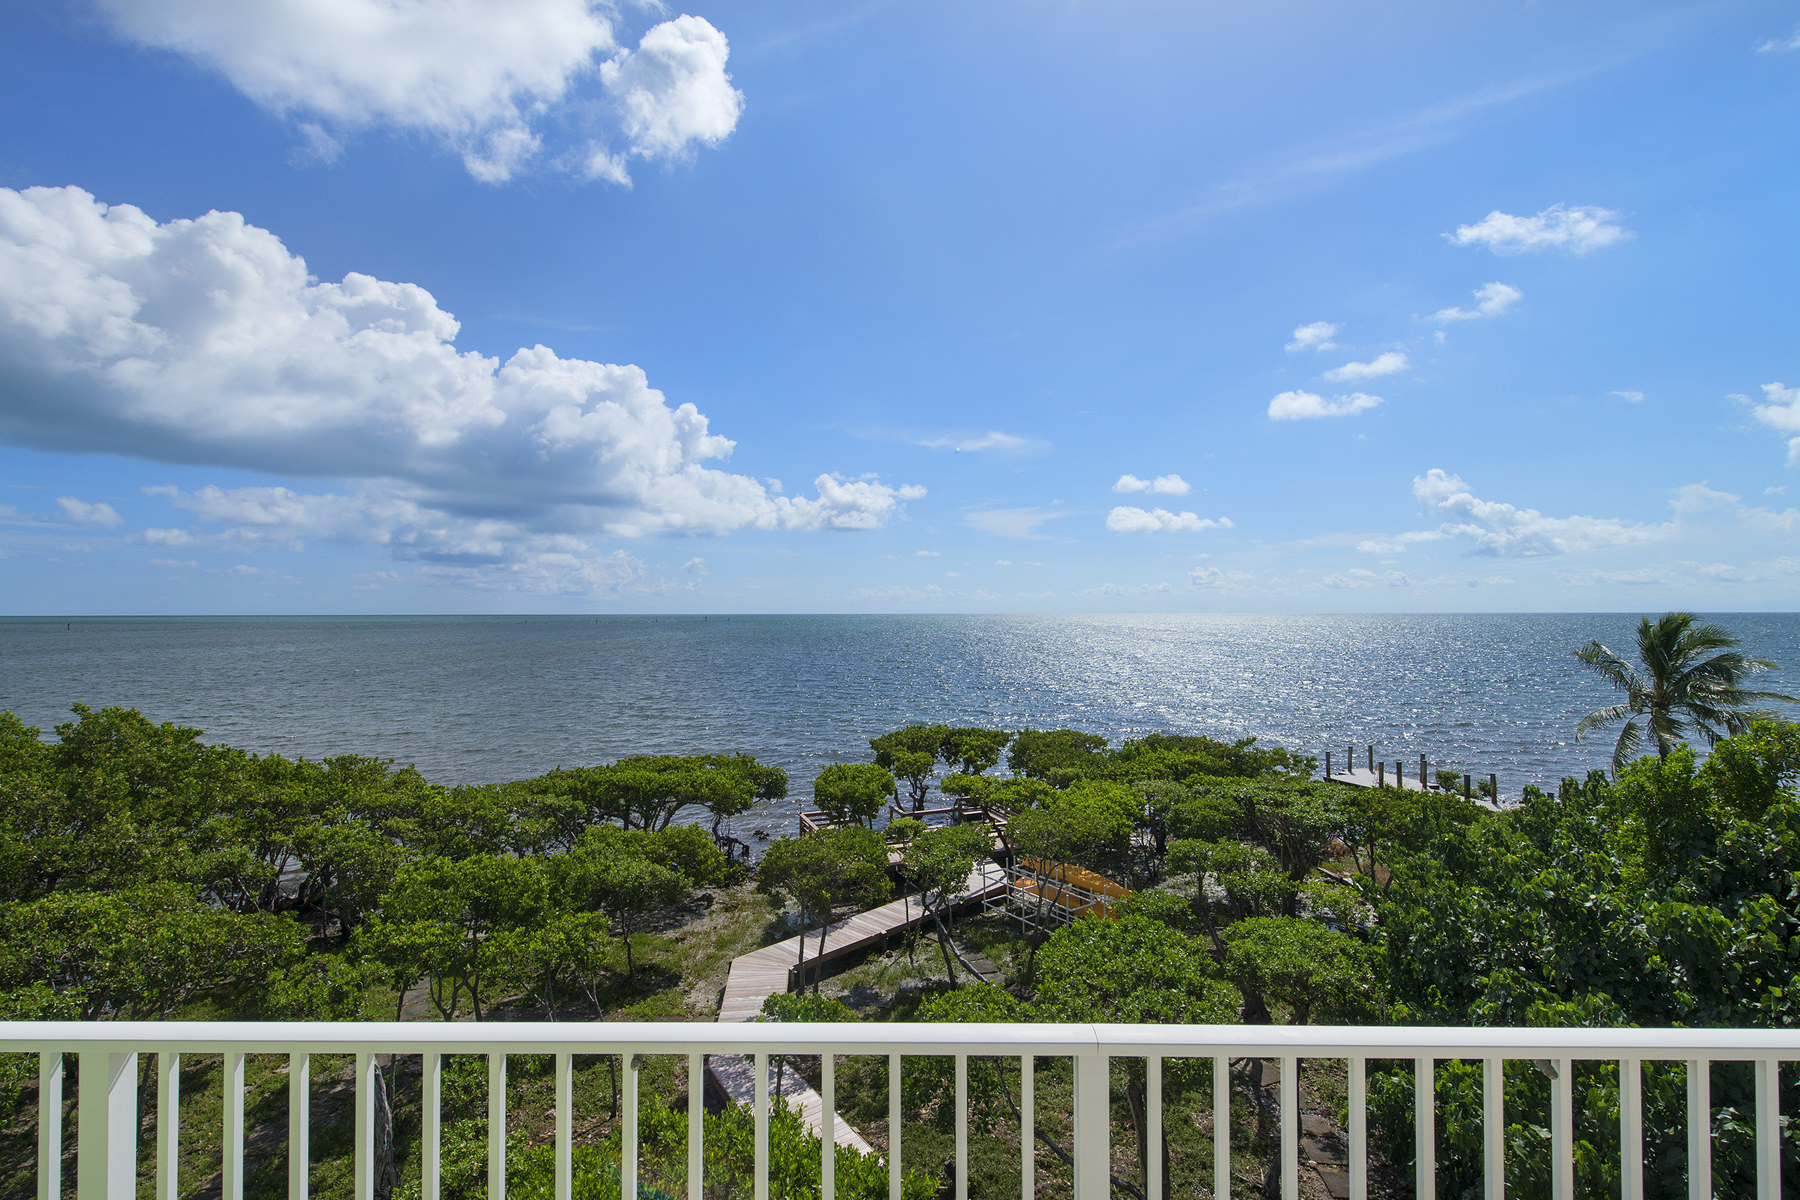 Vivienda unifamiliar por un Venta en Ocean Front Home at Ocean Reef 15 Sunrise Cay Drive, Ocean Reef Community, Key Largo, Florida, 33037 Estados Unidos